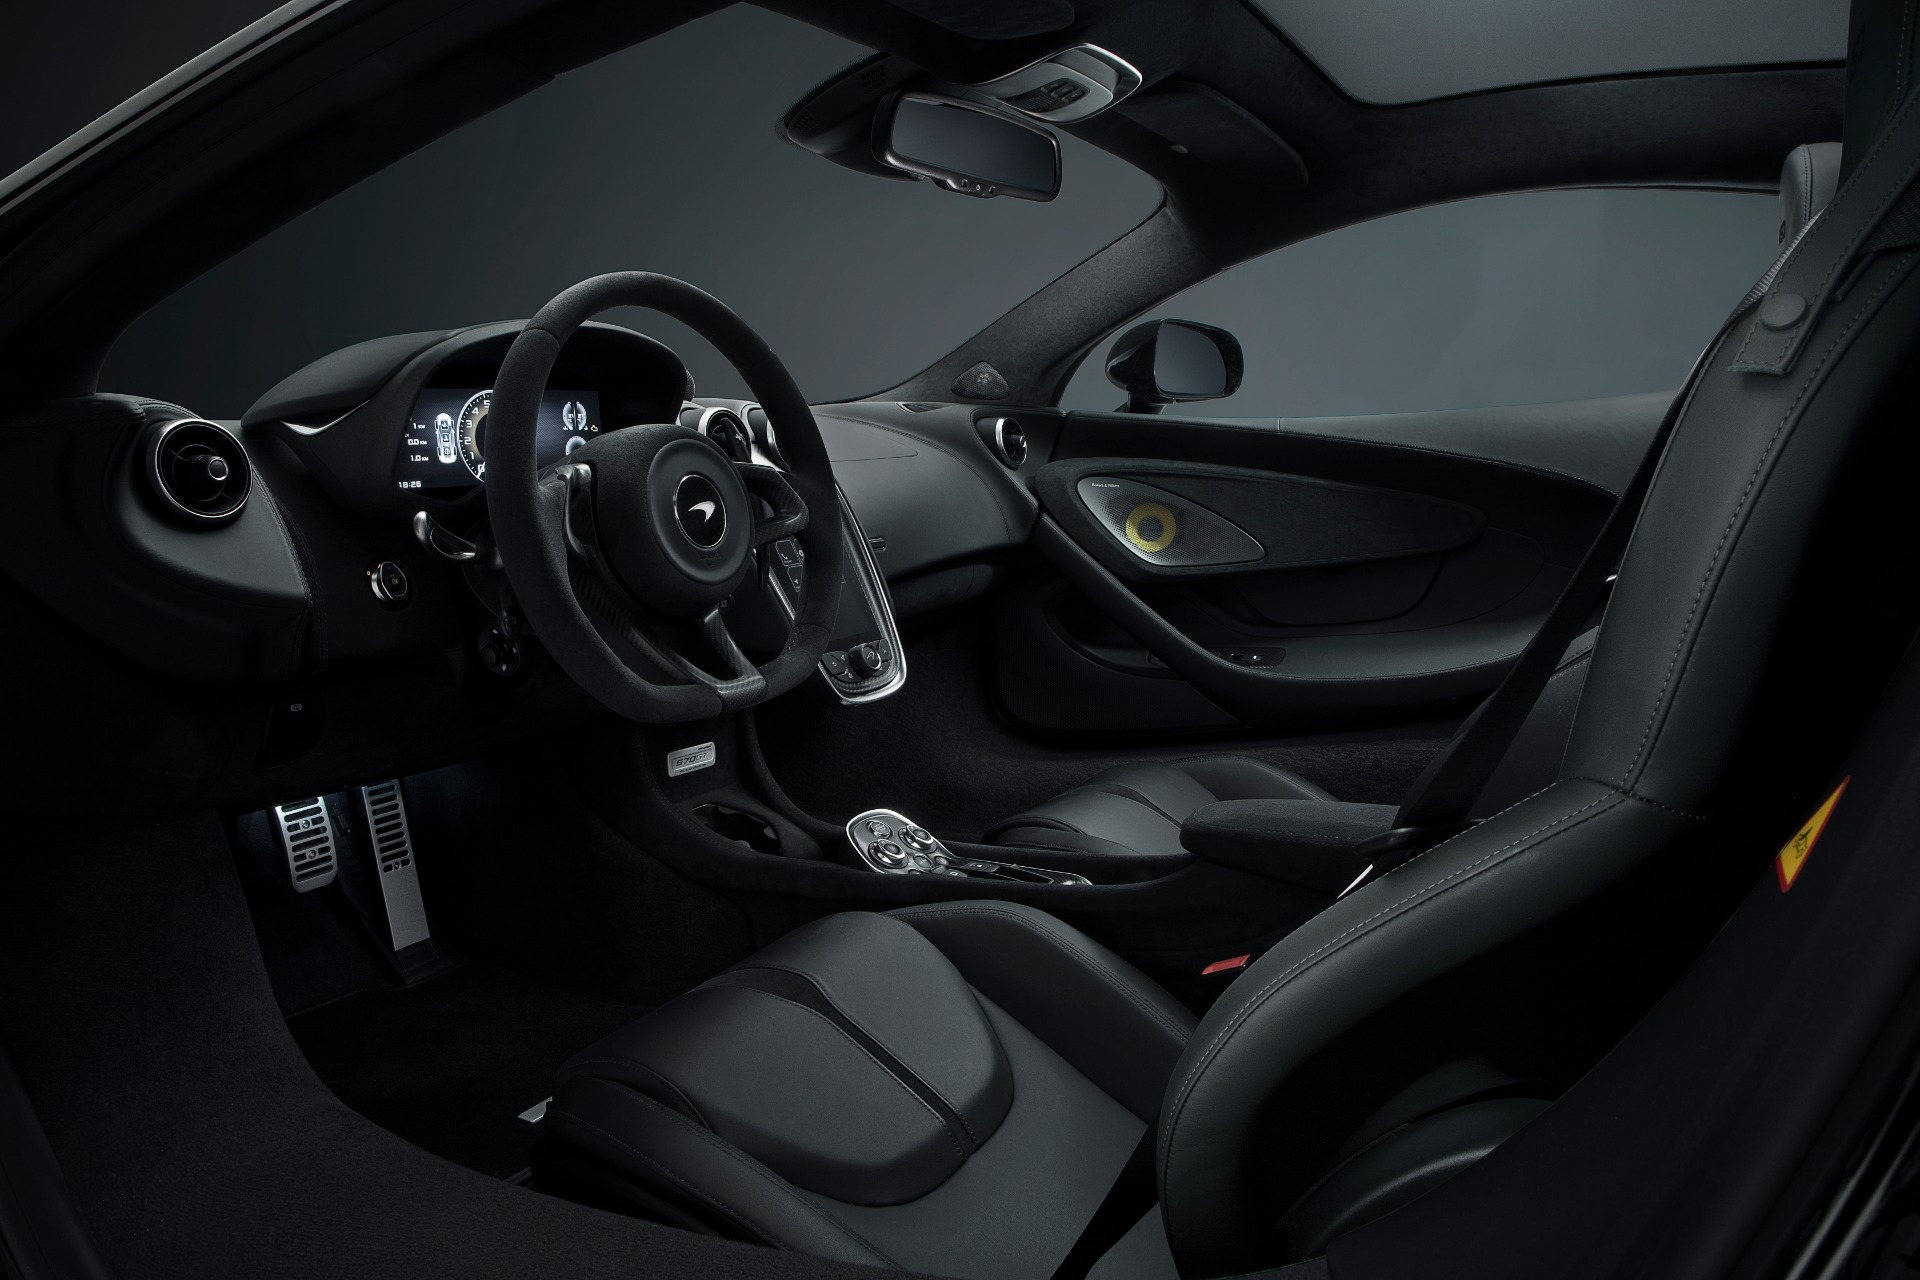 New 2018 MCLAREN 570GT MSO COLLECTION - LIMITED EDITION For Sale In Greenwich, CT 2136_p7